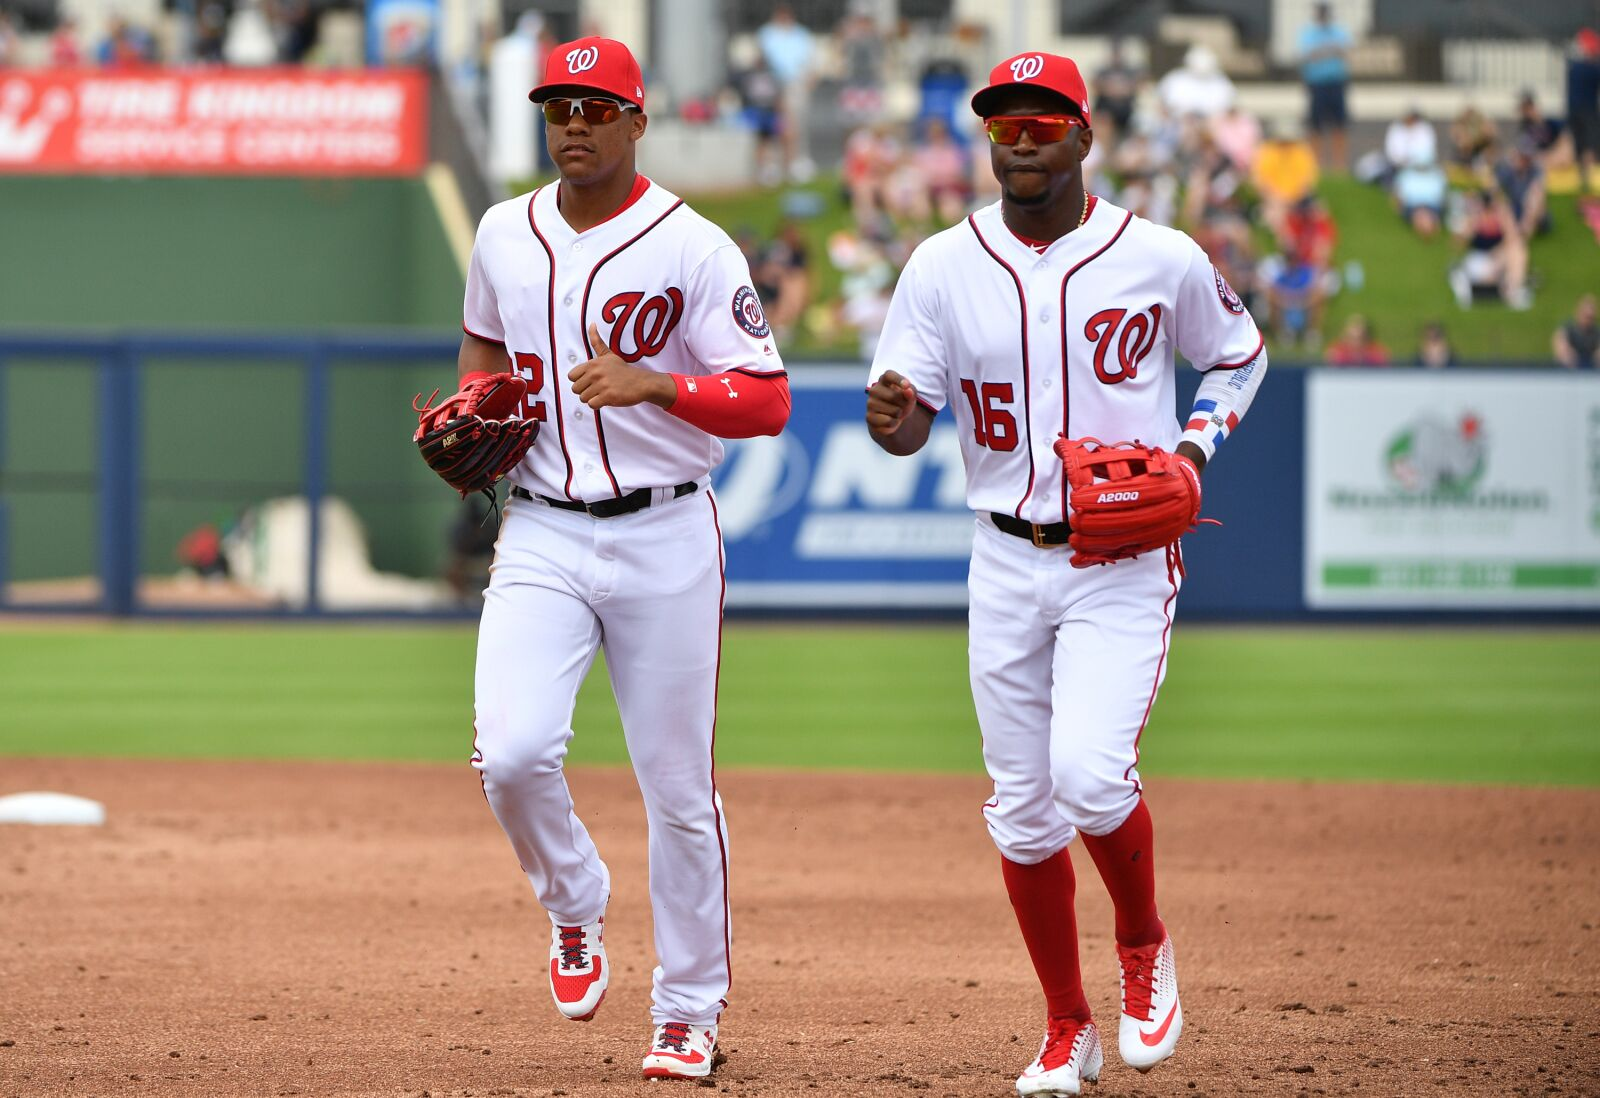 Washington Nationals outfield duo may be the next big thing